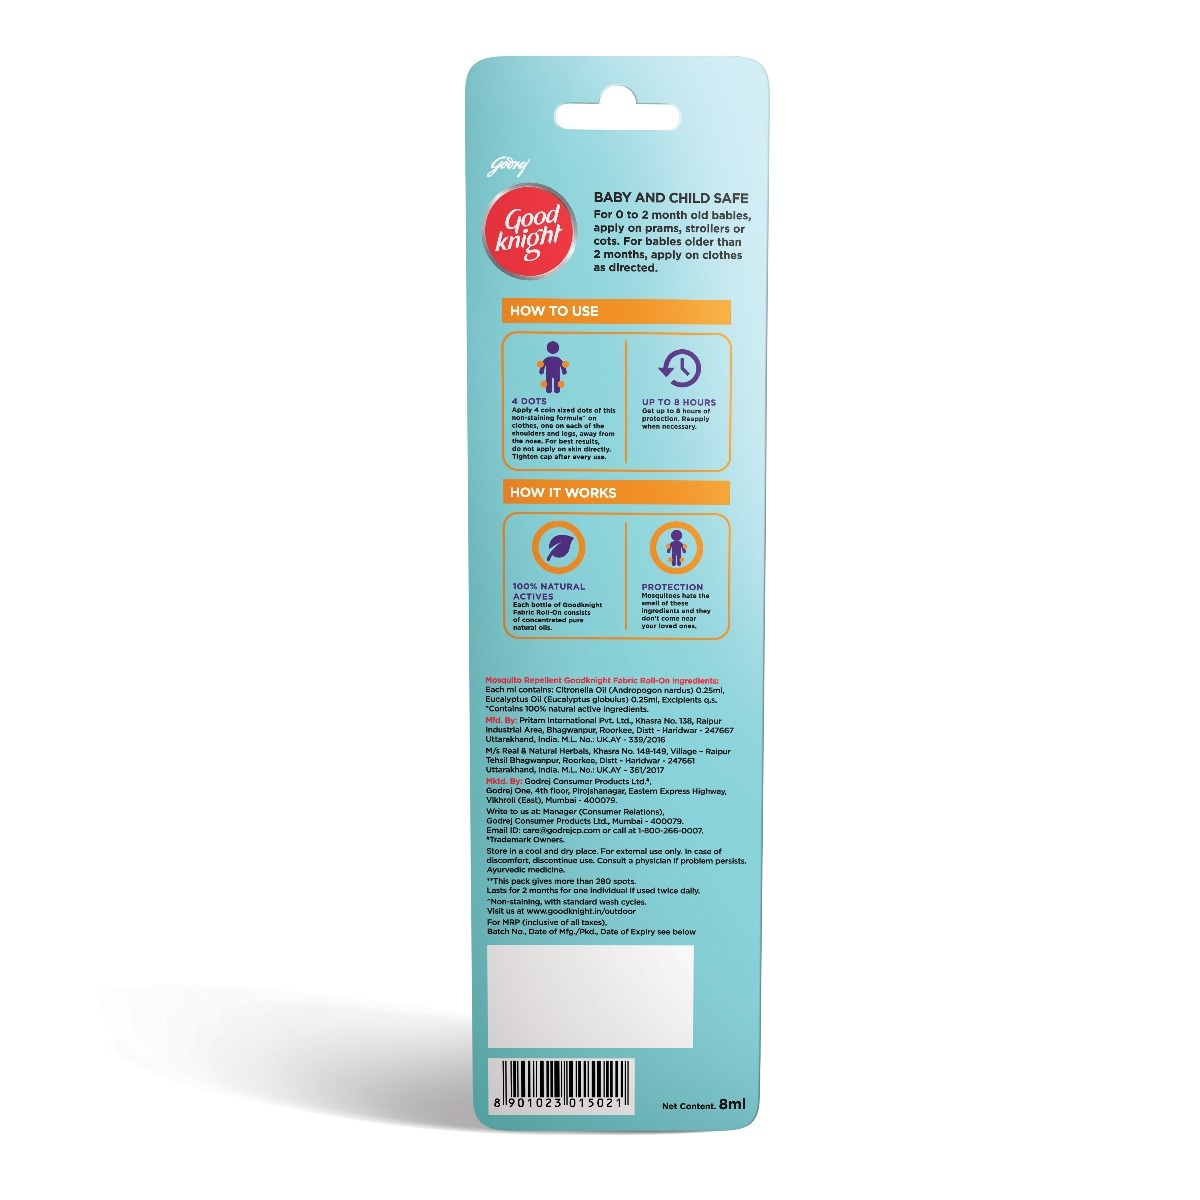 Good Knight Citrus Fragrance Mosquito Repellent Fabric Roll-On, 8 ml, Pack of 1